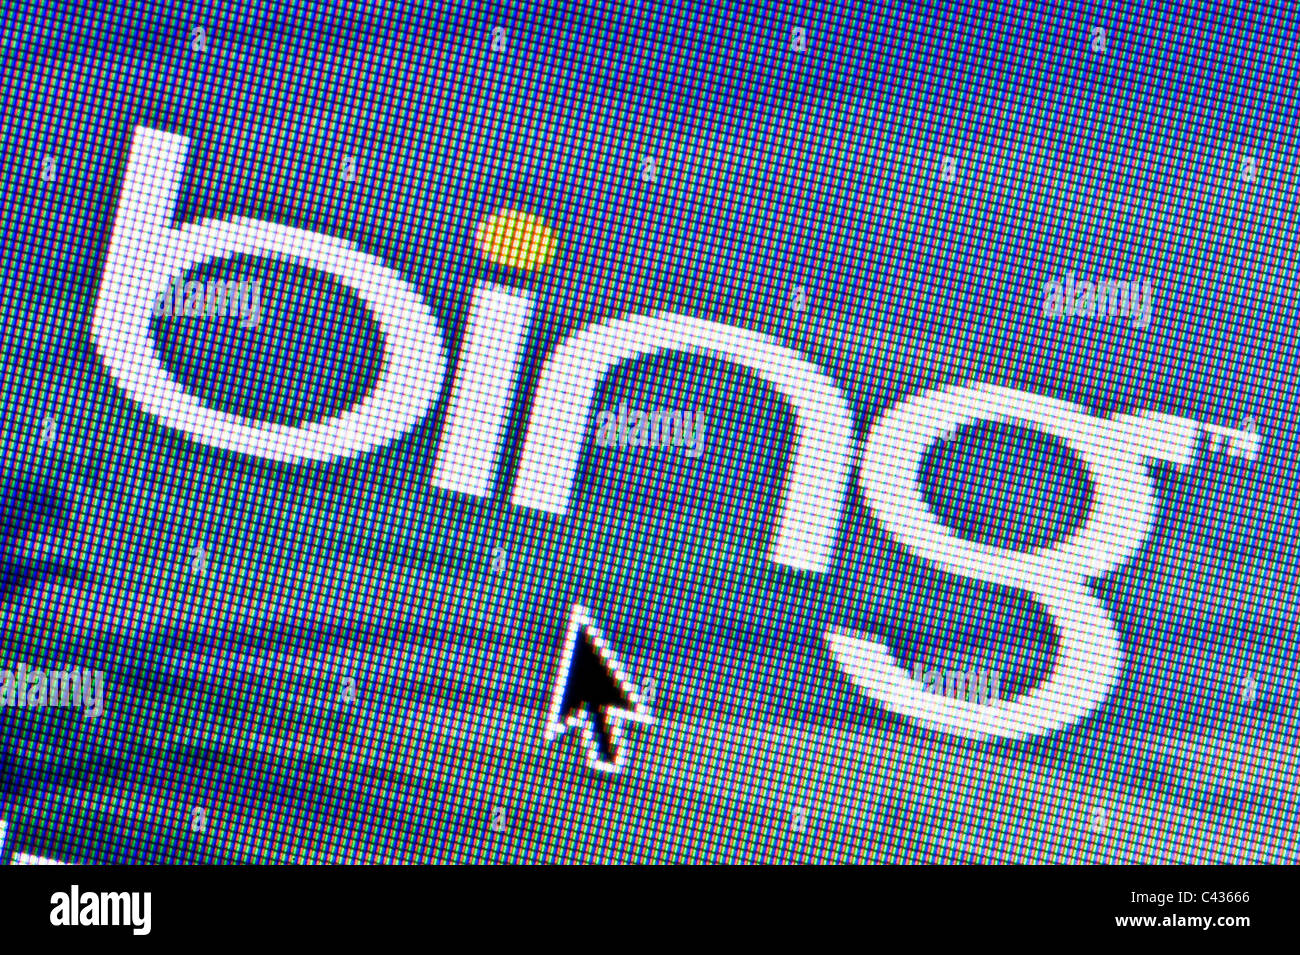 Close up of the Bing logo as seen on its website. (Editorial use only: print, TV, e-book and editorial website). - Stock Image